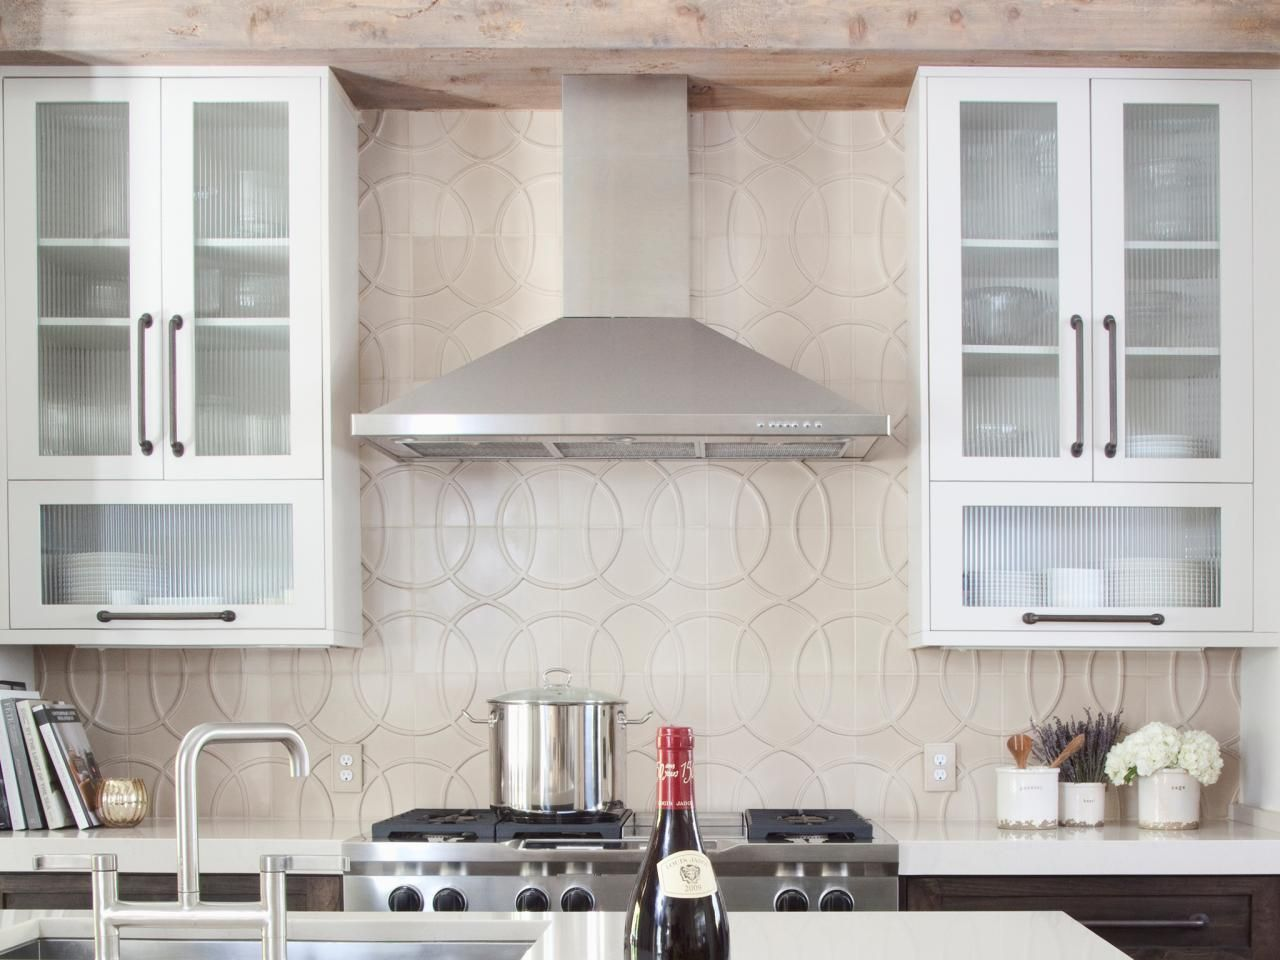 Kitchen backsplash design ideas kitchen backsplash hgtv and